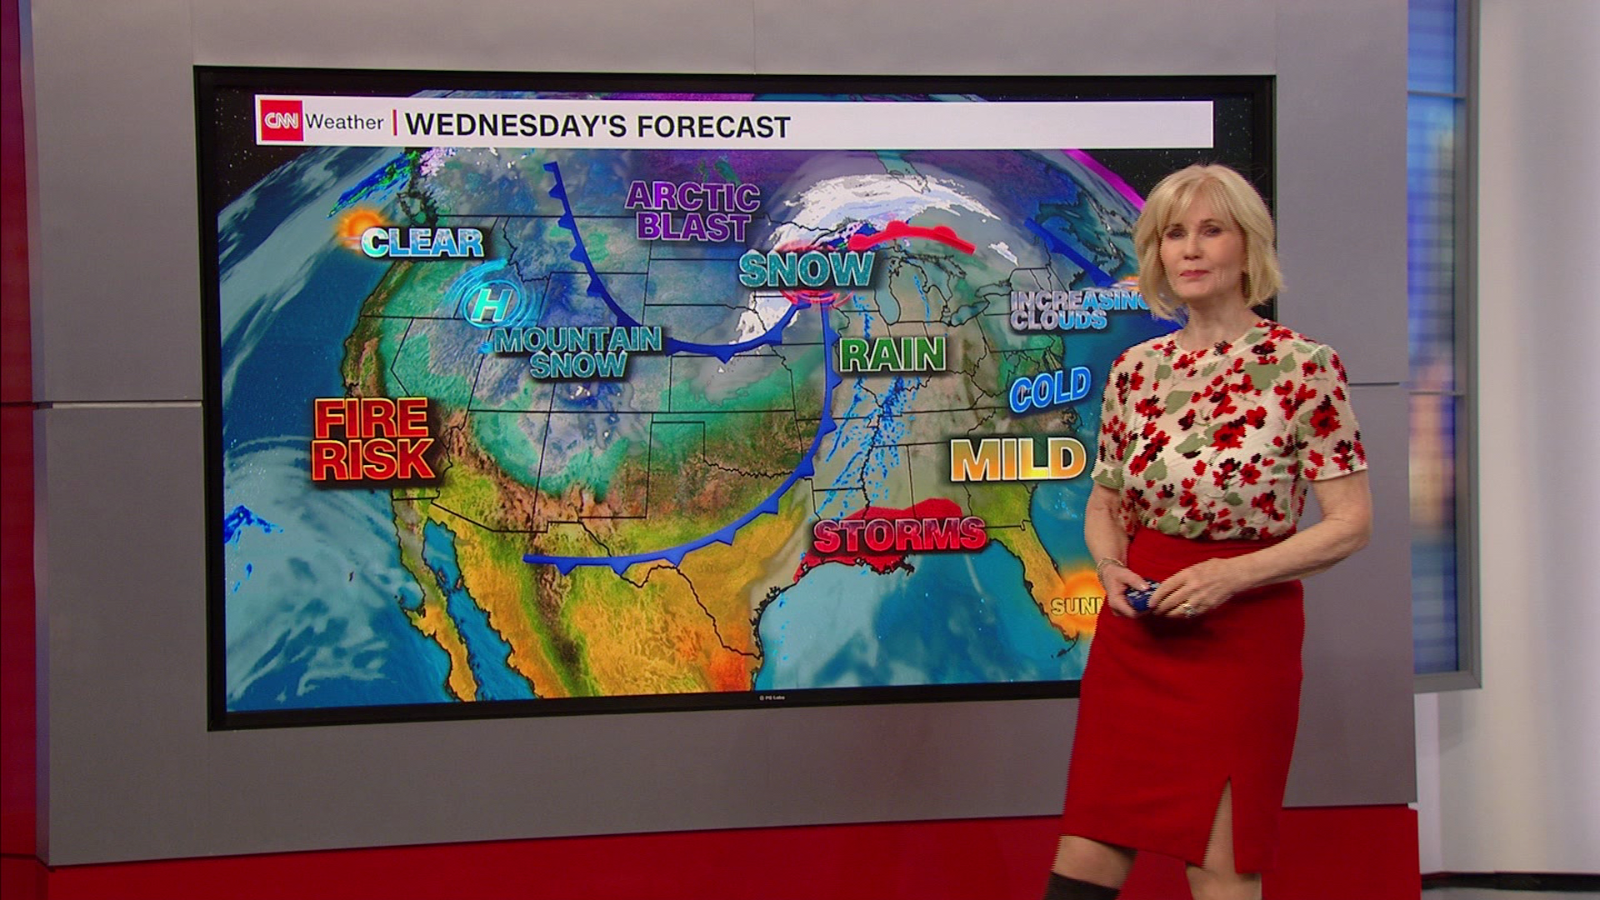 Weather Forecast For Christmas 2021 Christmas Weather Forecast It Might Snow In Some Of The Least Probable Locations Cnn